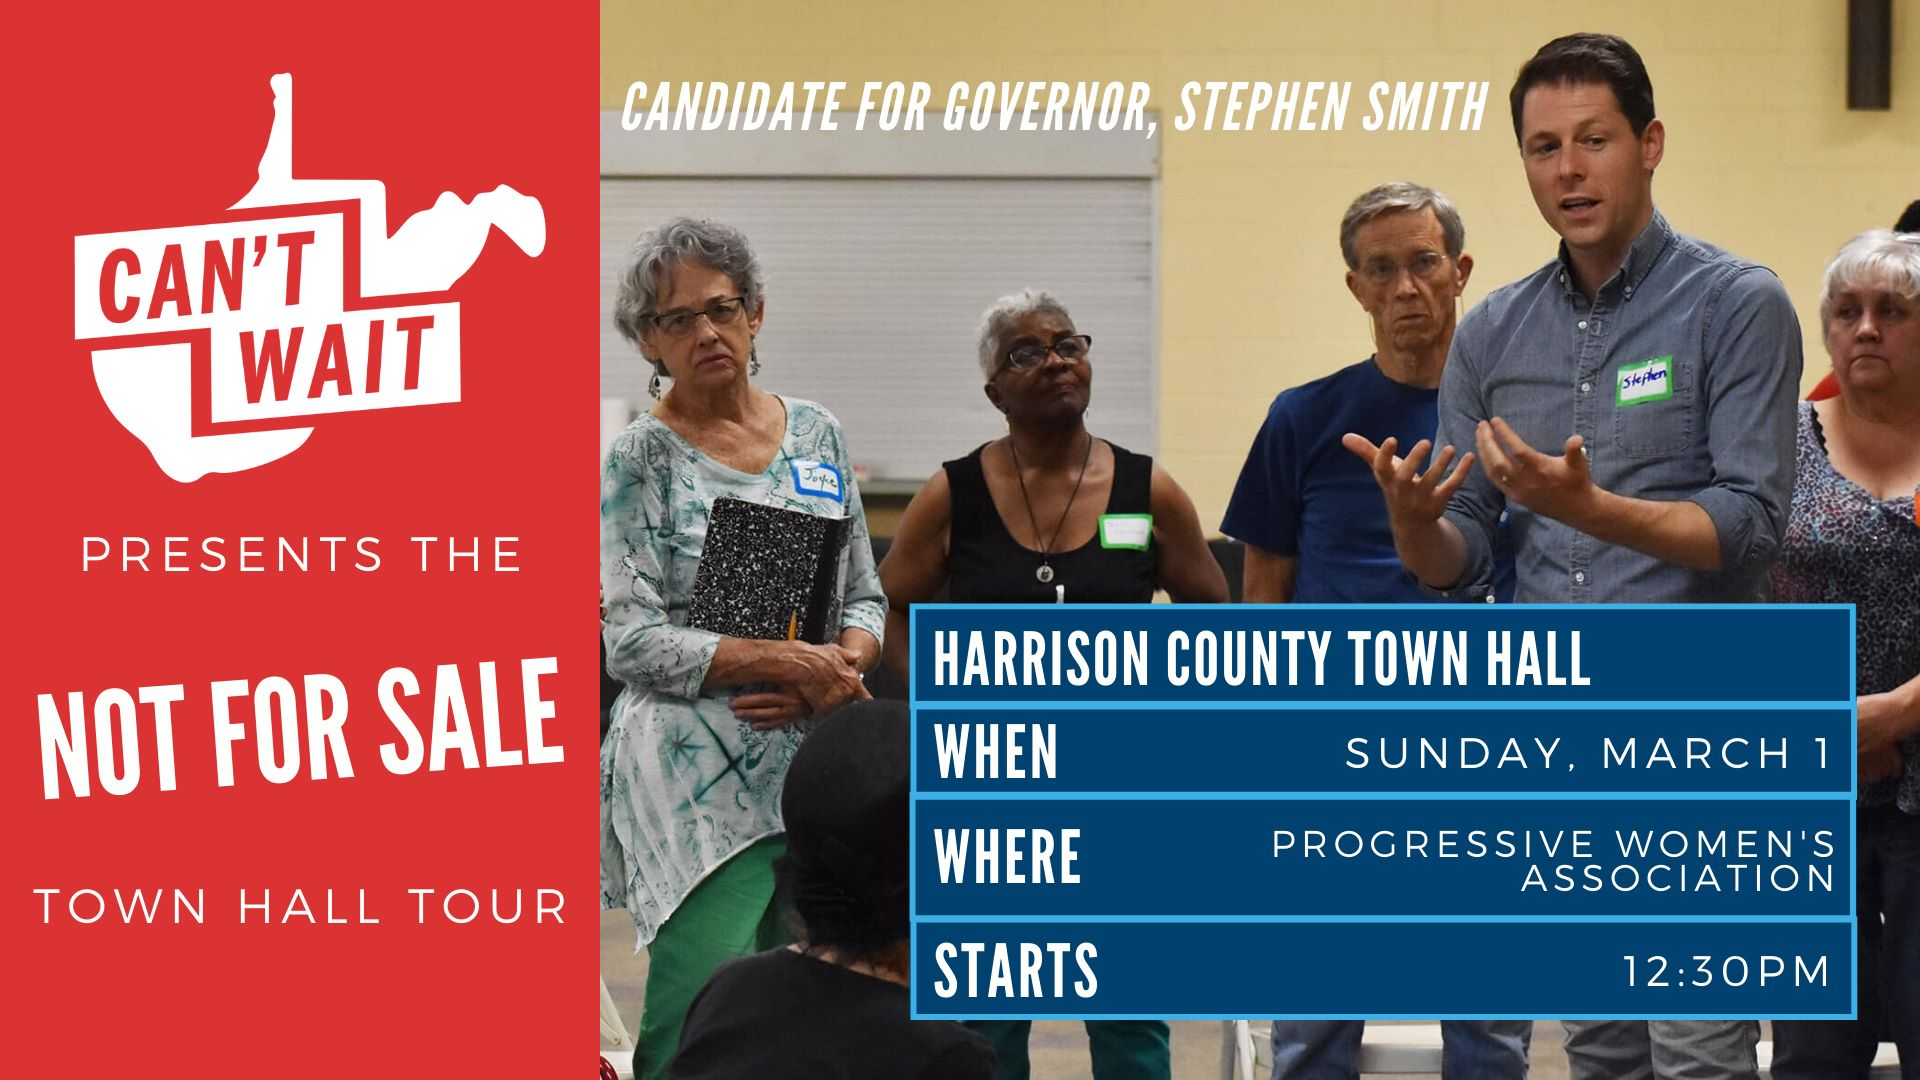 Harrison Town Hall graphic